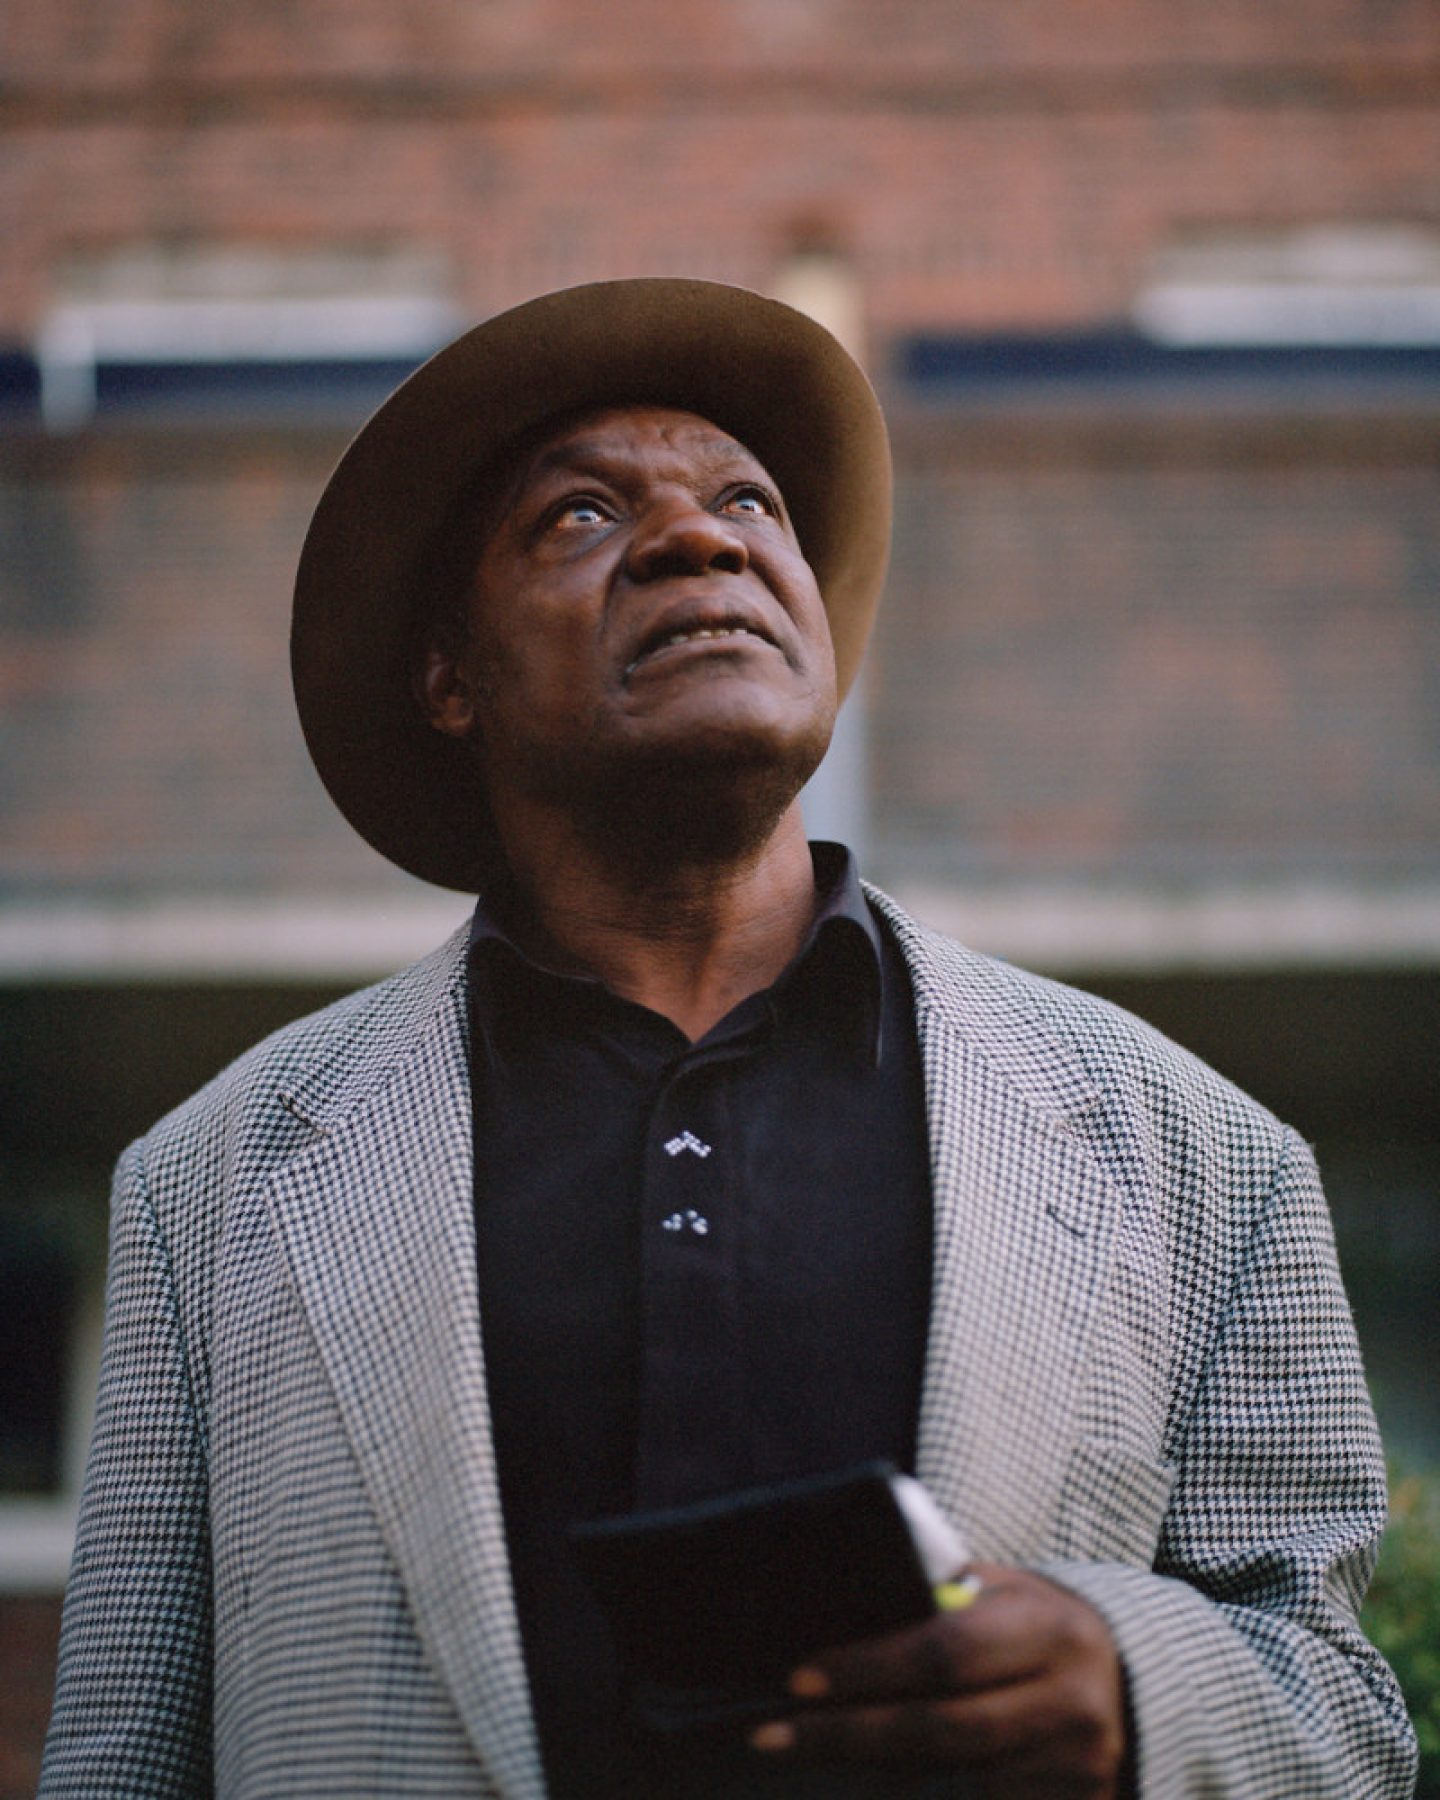 Color Film photography by Cian Oba-Smith, portrait, man, London